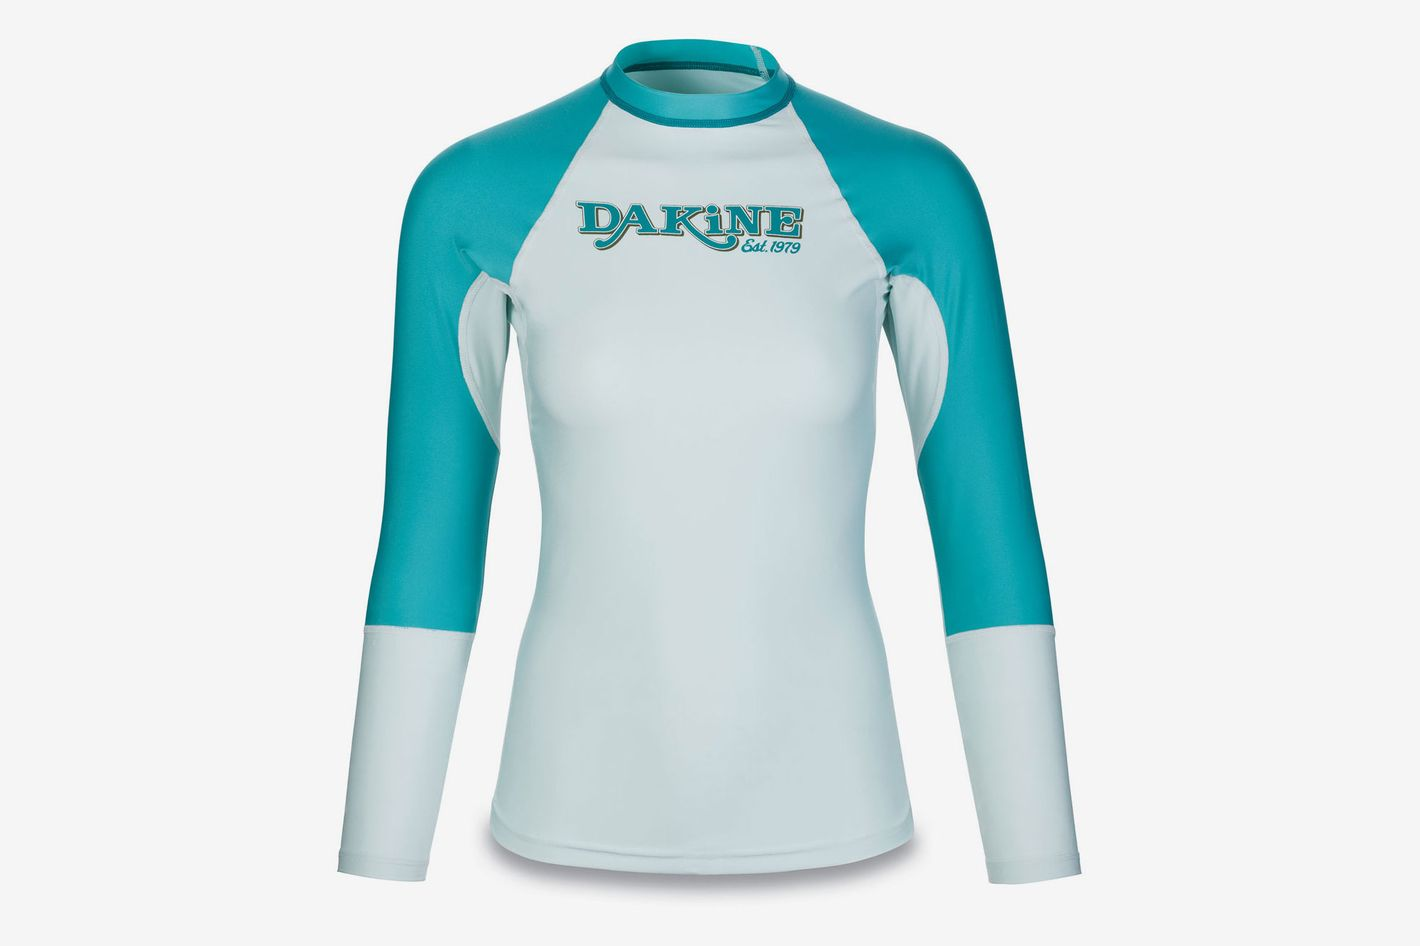 Dakine Women's Flow Snug Fit Long Sleeve Rashguard